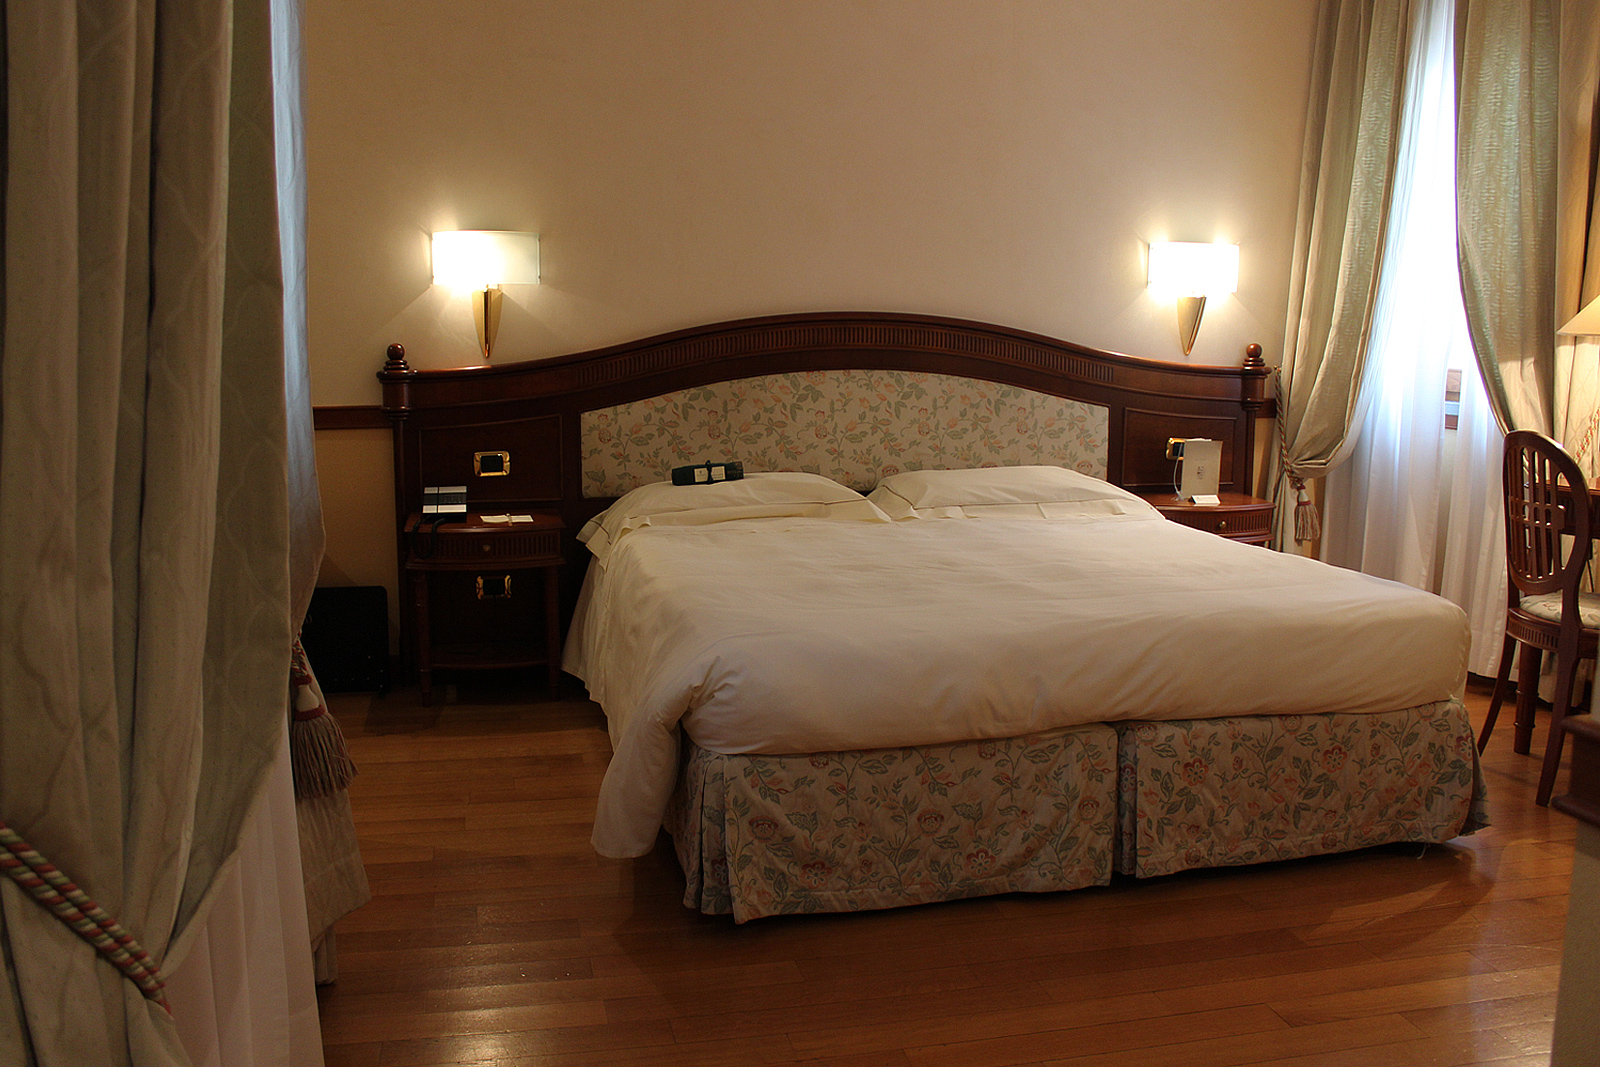 Wheelchair Accessible Hotel Room At Hotel Degli Orafi